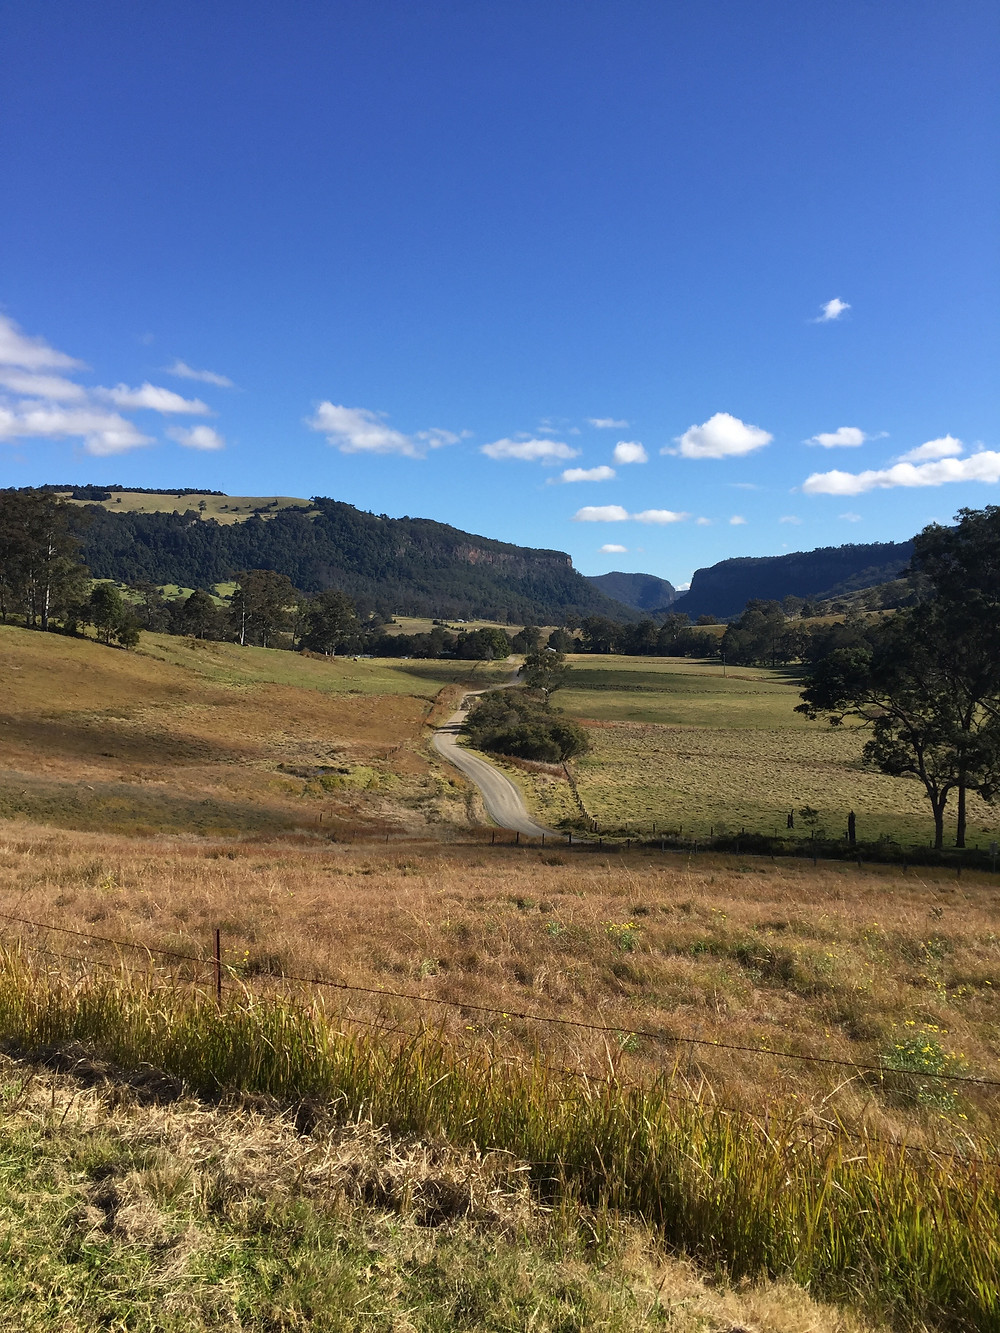 The Head looking back to Condamine Gorge